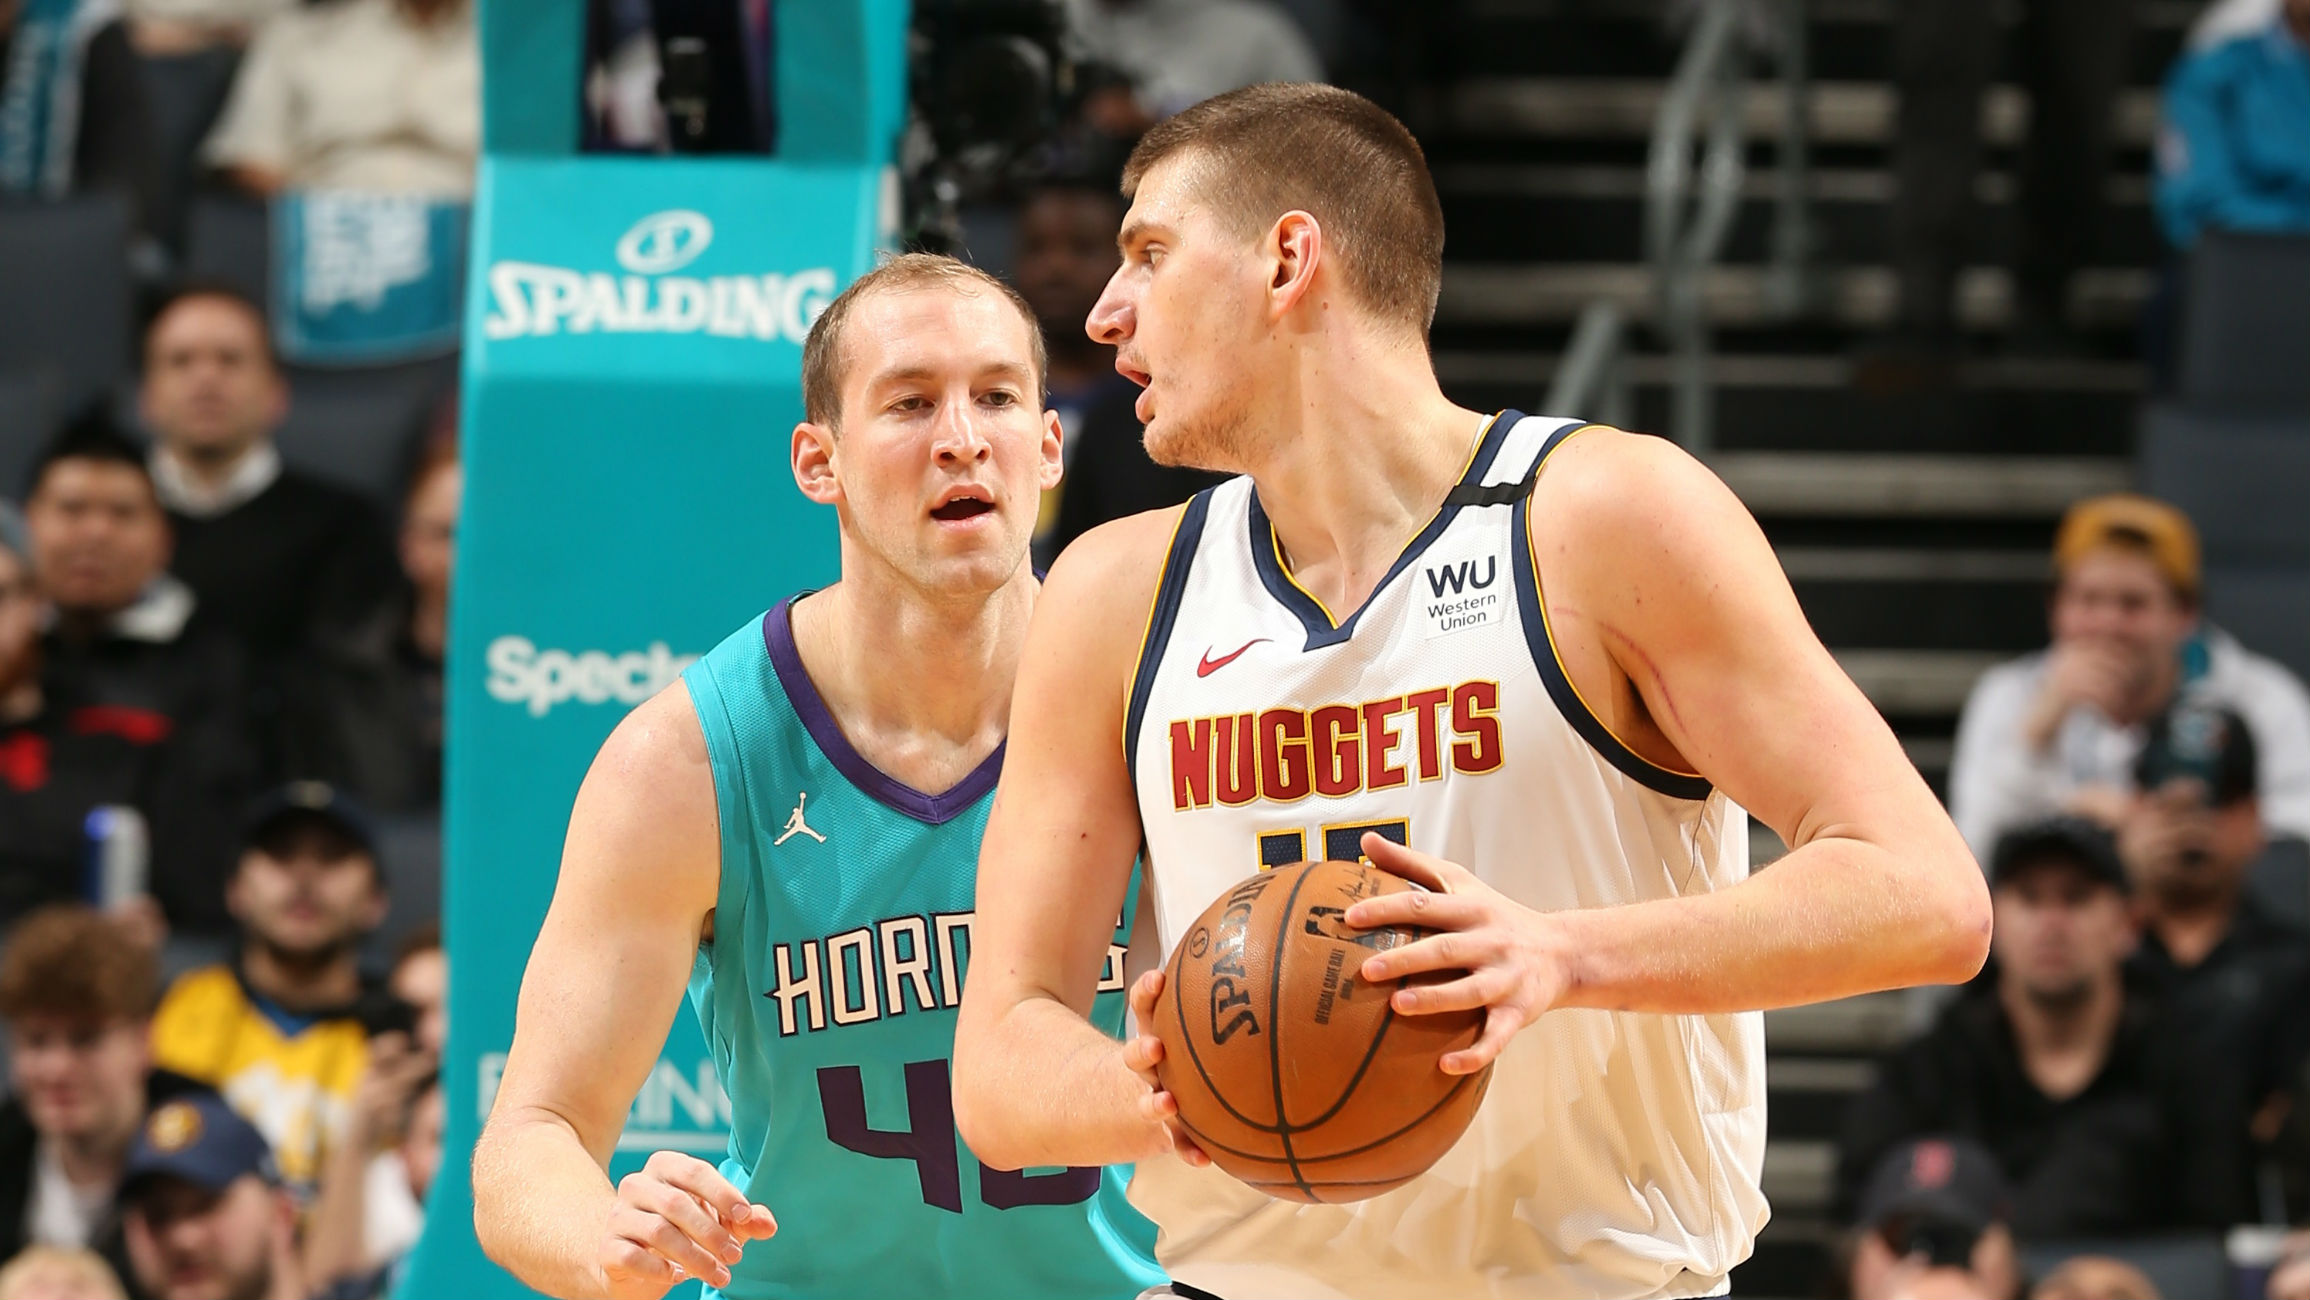 Nuggets @ Hornets